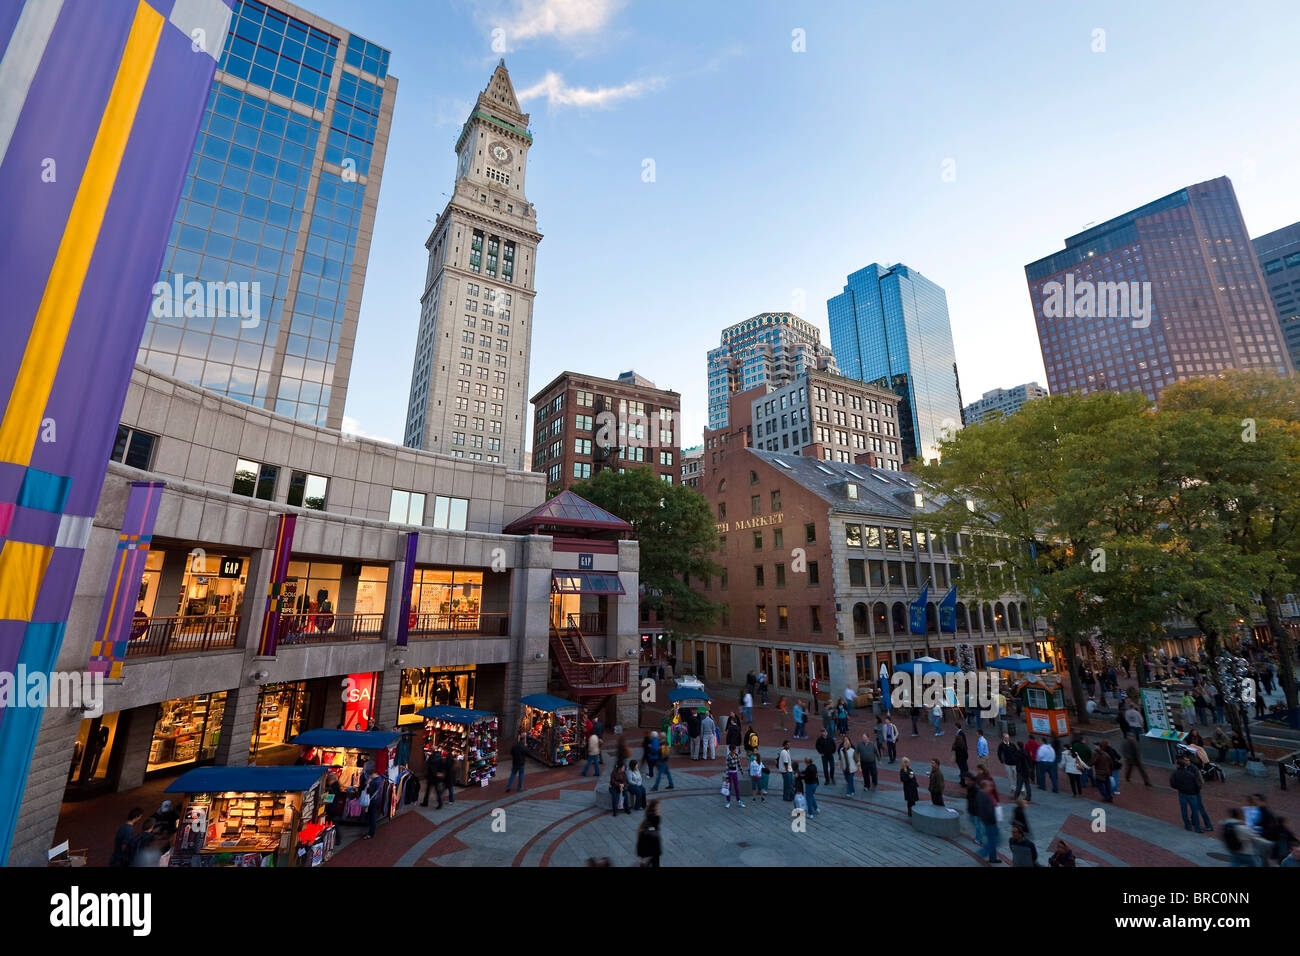 Quincy Market, Boston, Massachusetts, New England, USA Photo Stock